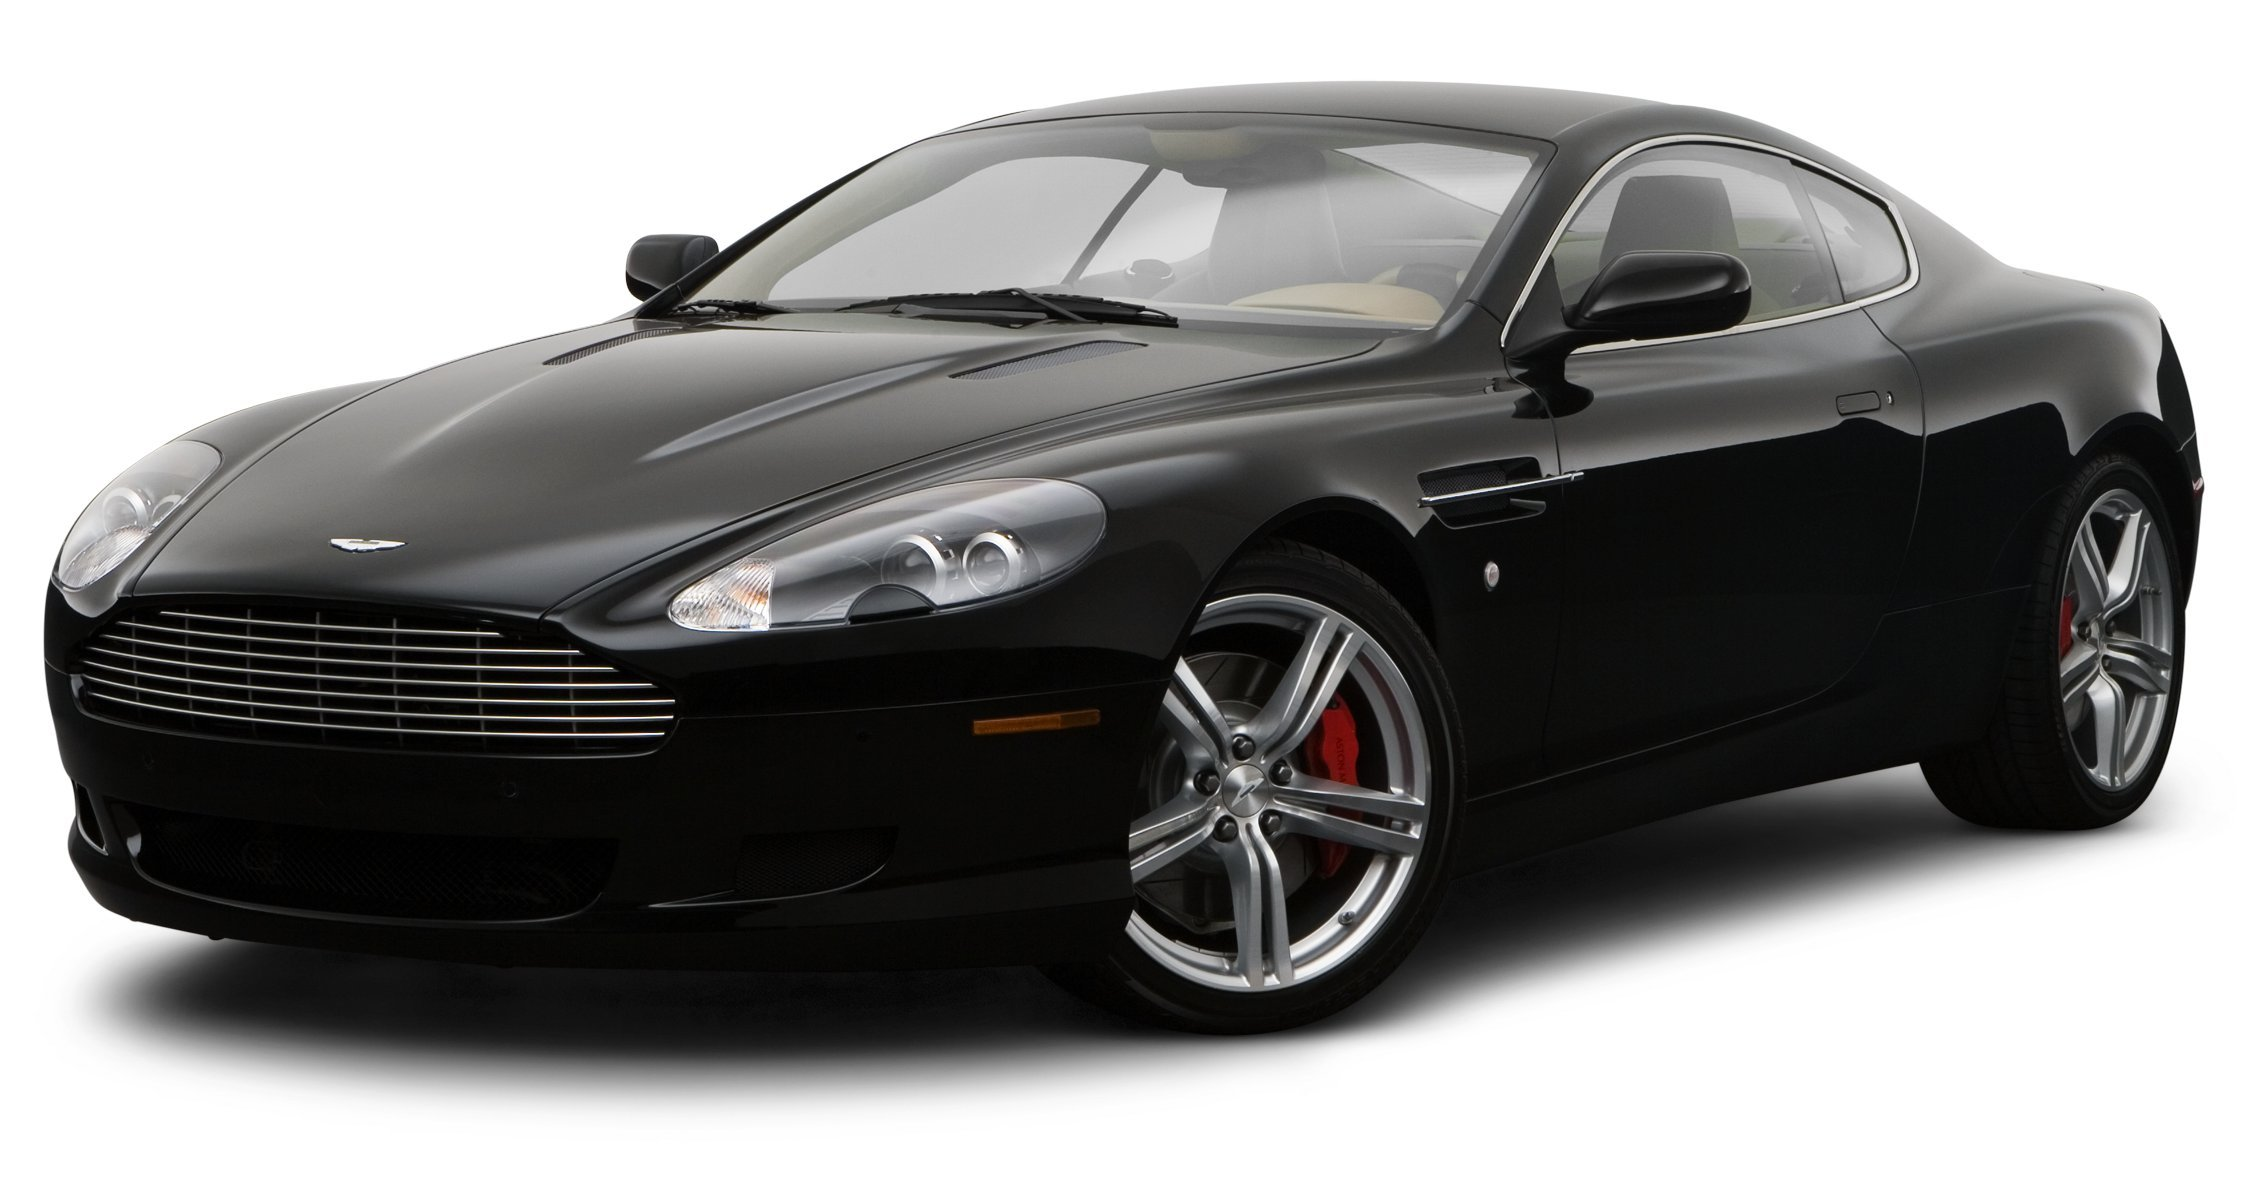 Amazon 2008 Aston Martin DB9 Reviews and Specs Vehicles